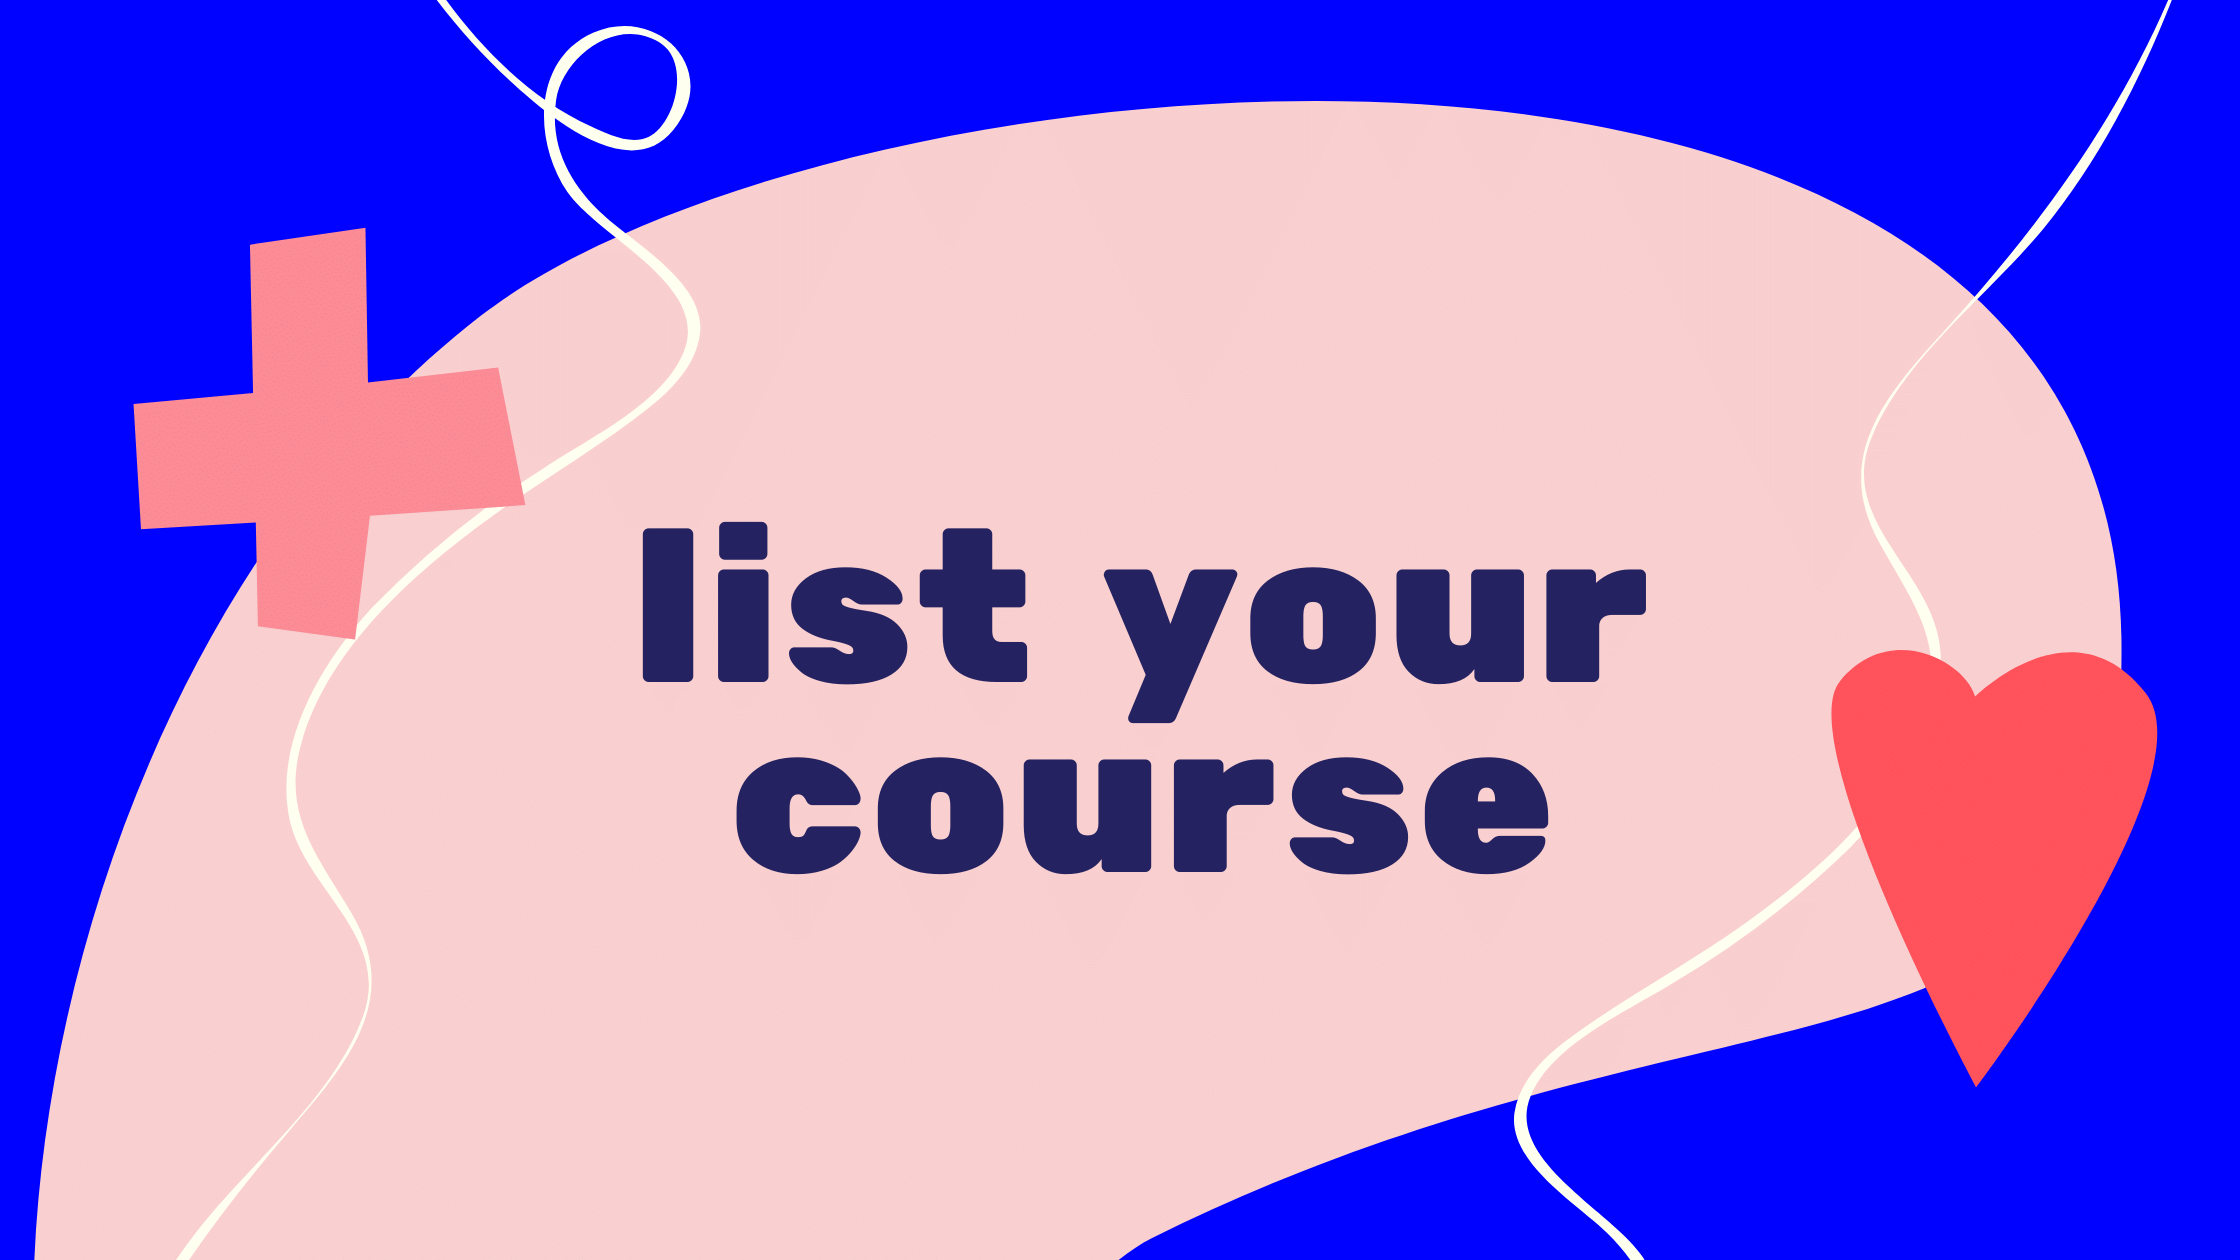 List your course